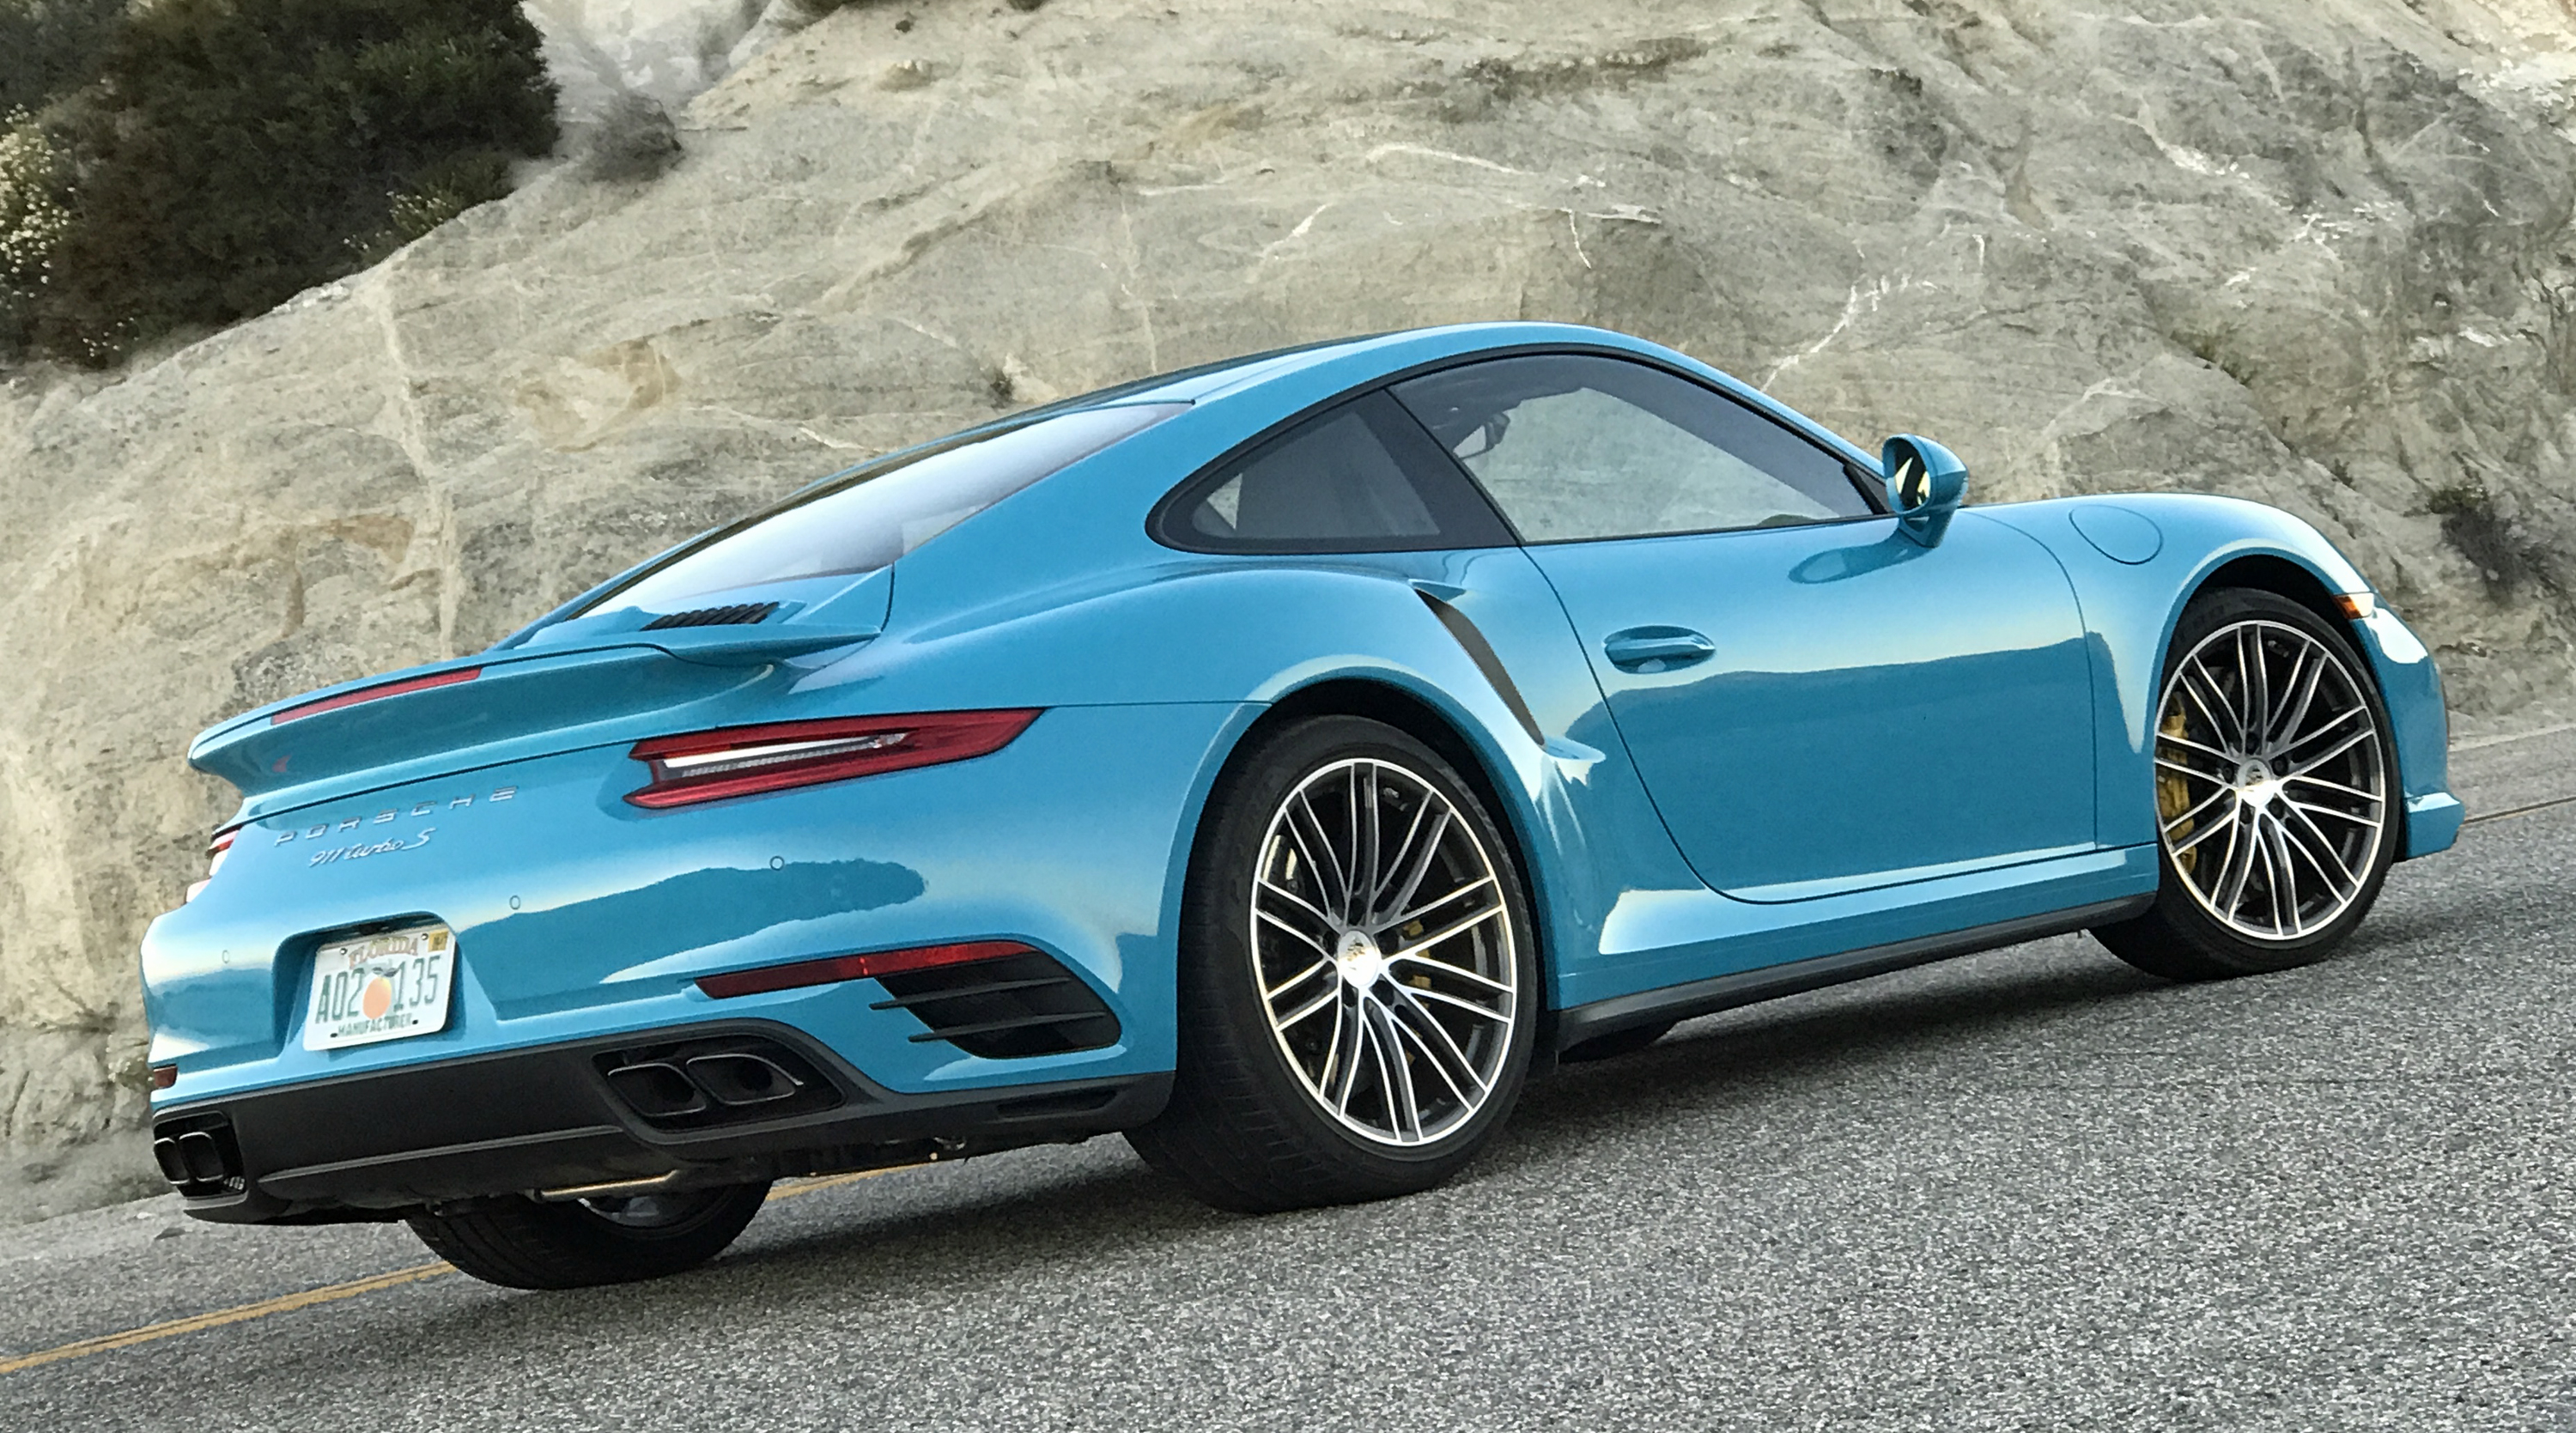 2017 Porsche 911 Turbo S Rear Miami Blue